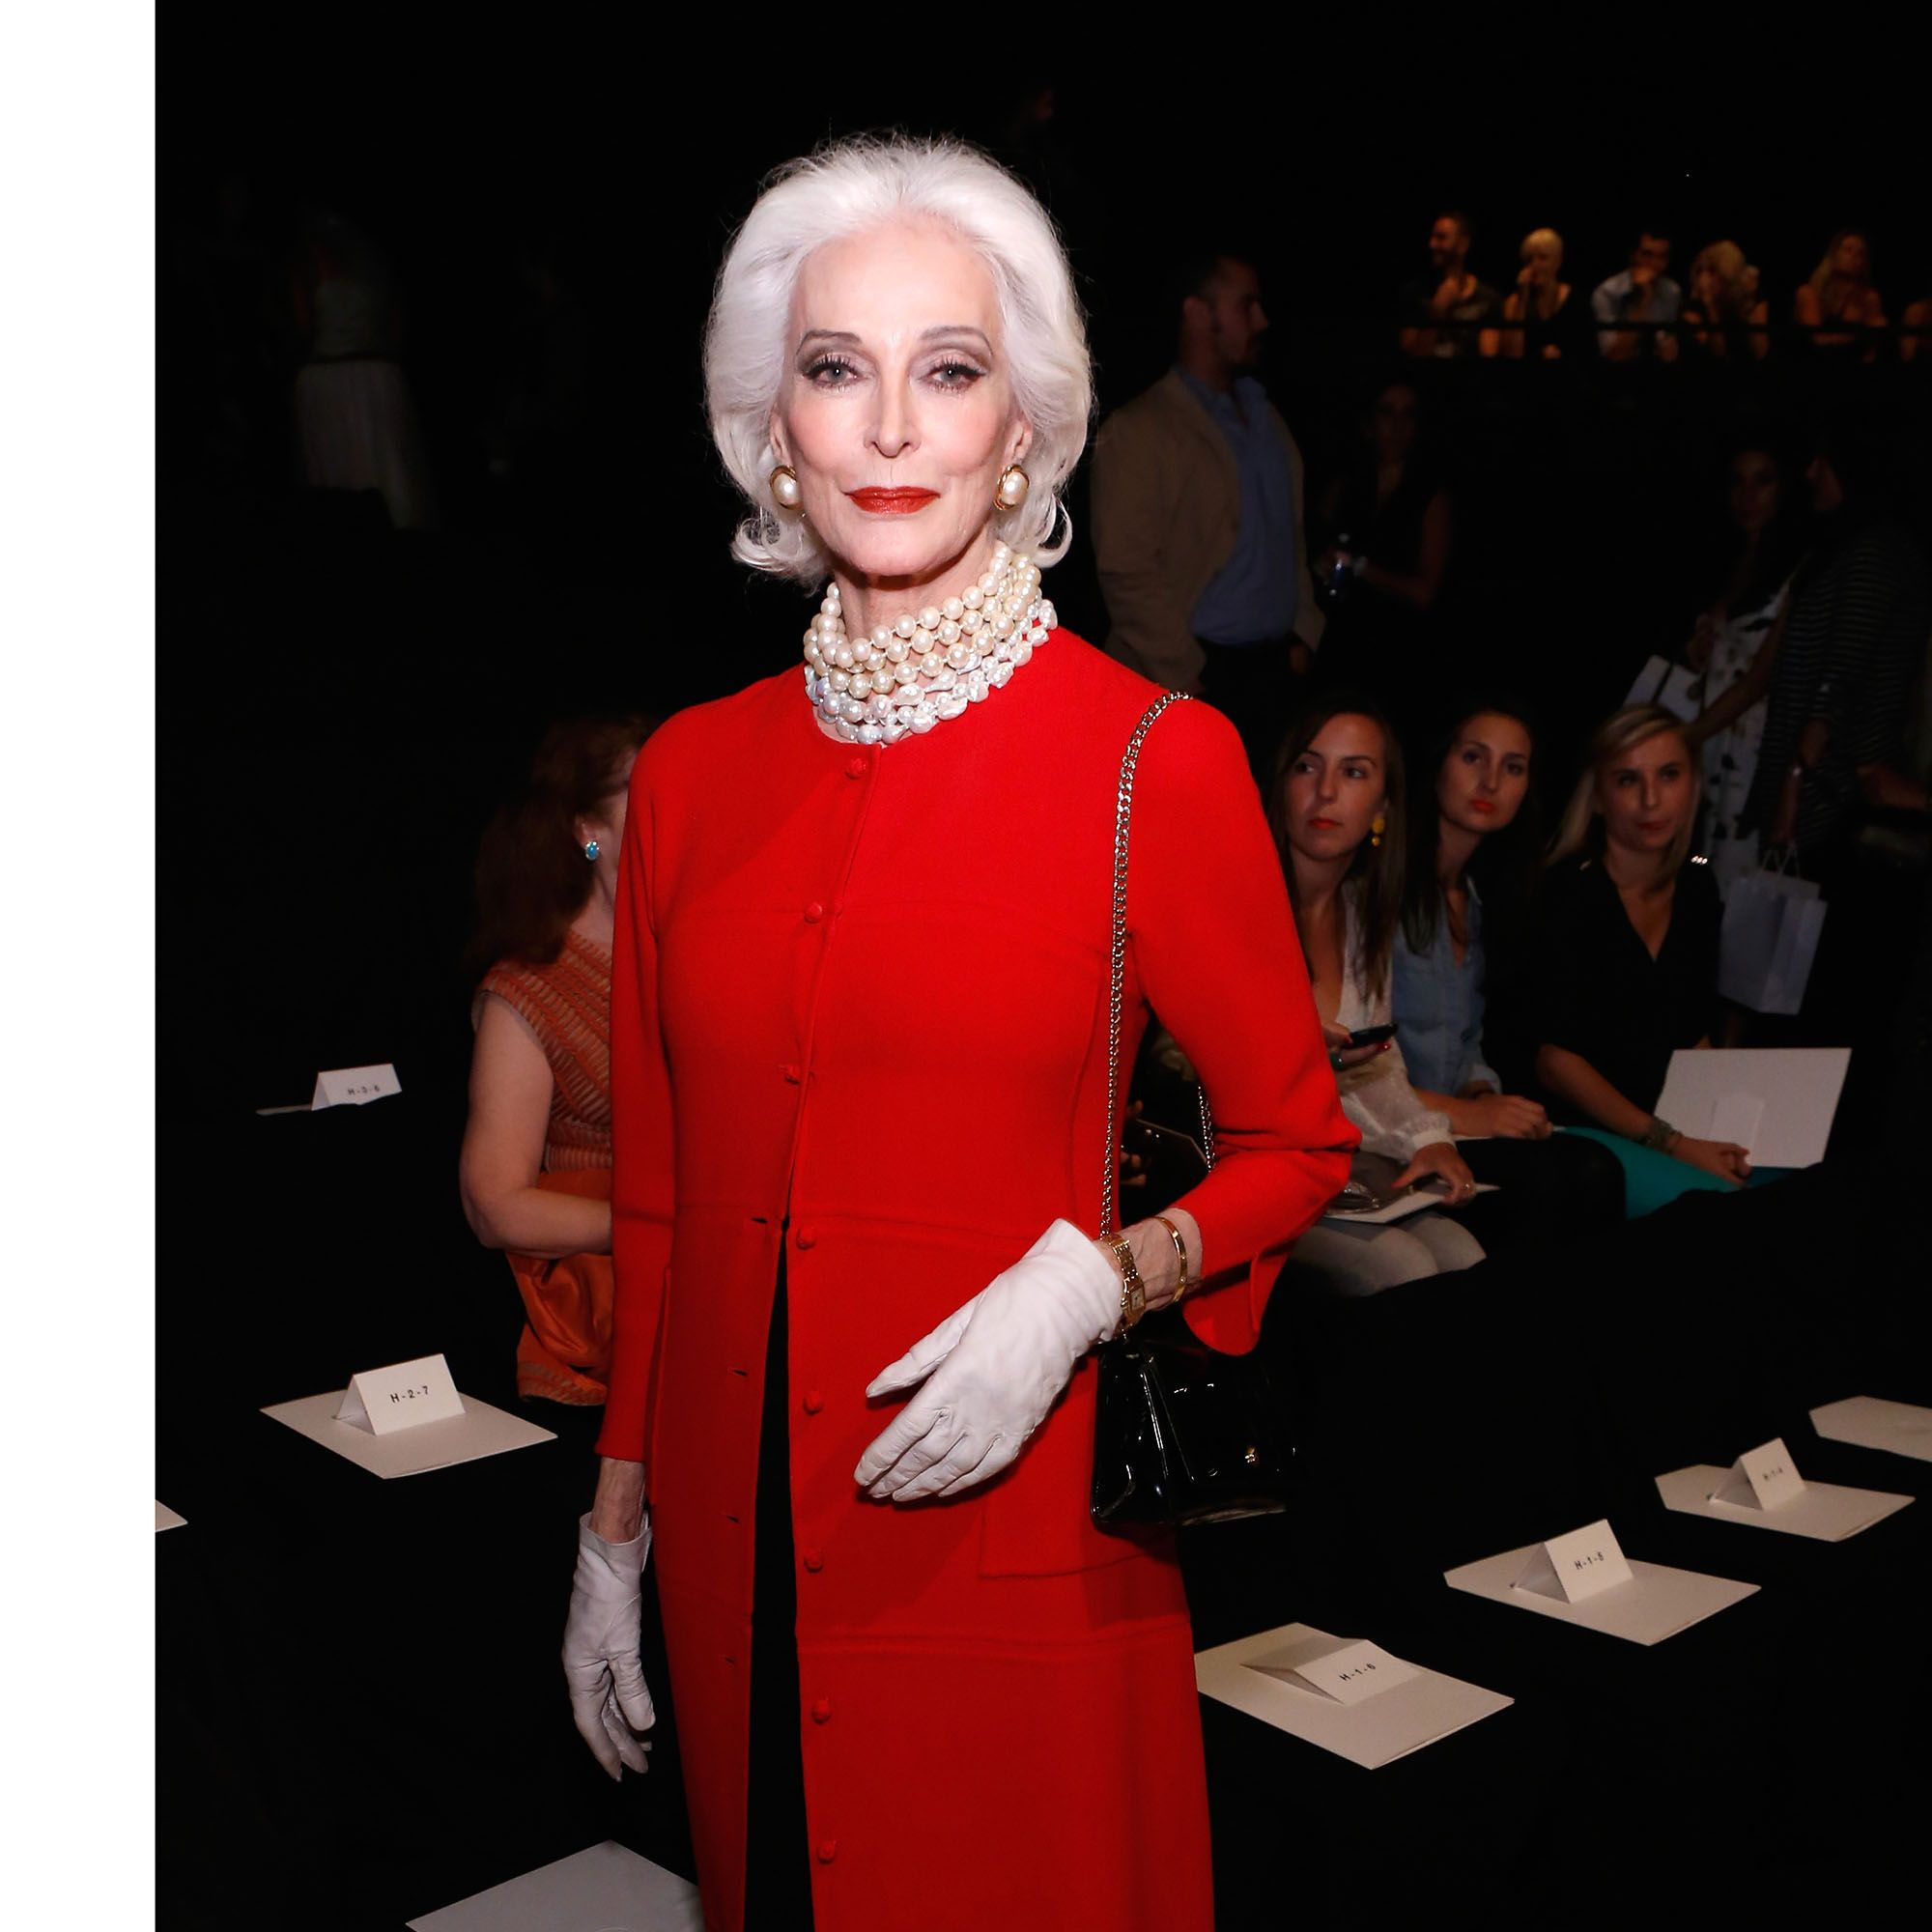 NEW YORK, NY - SEPTEMBER 09:  Carmen Dell'Orefice attends the Chado Ralph Rucci Spring 2013 fashion show during Mercedes-Benz Fashion Week  at The Theatre Lincoln Center on September 9, 2012 in New York City.  (Photo by Cindy Ord/Getty Images for Mercedes-Benz Fashion Week)